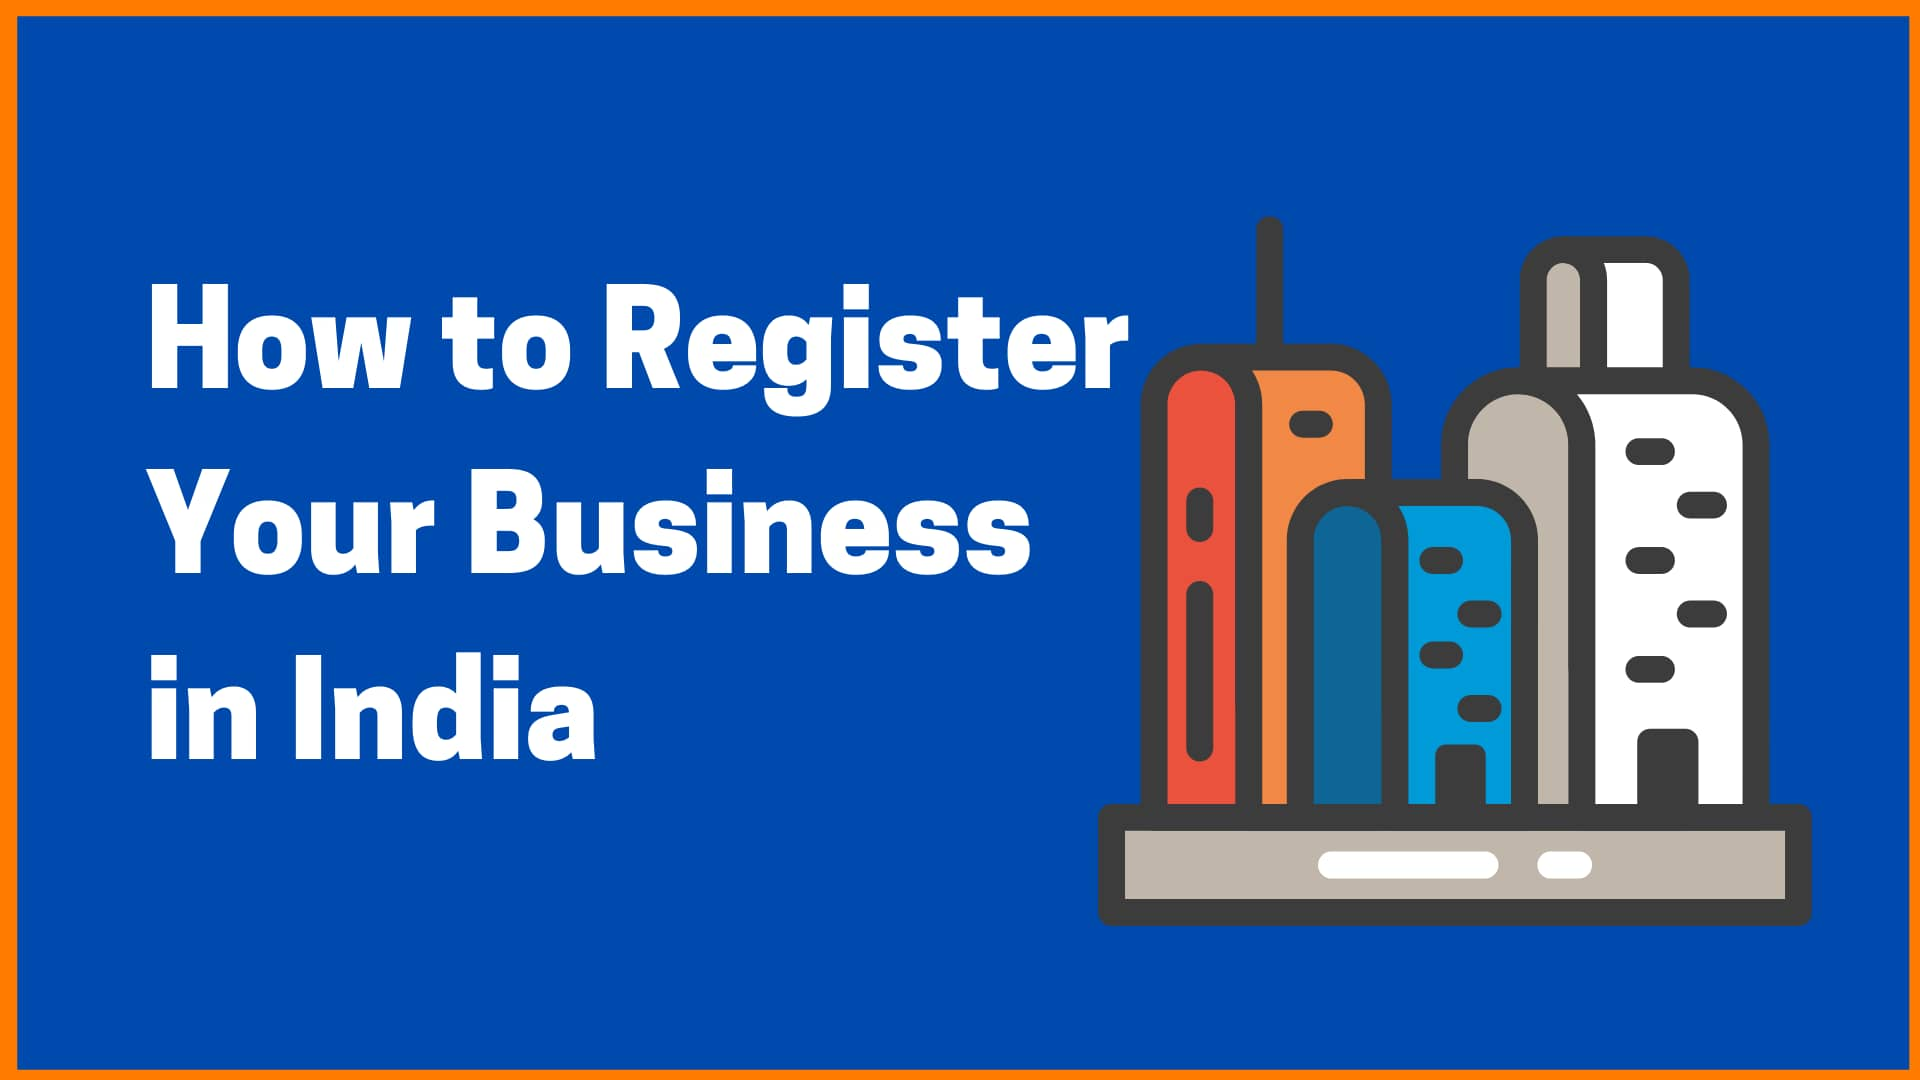 How to Register a Business in India